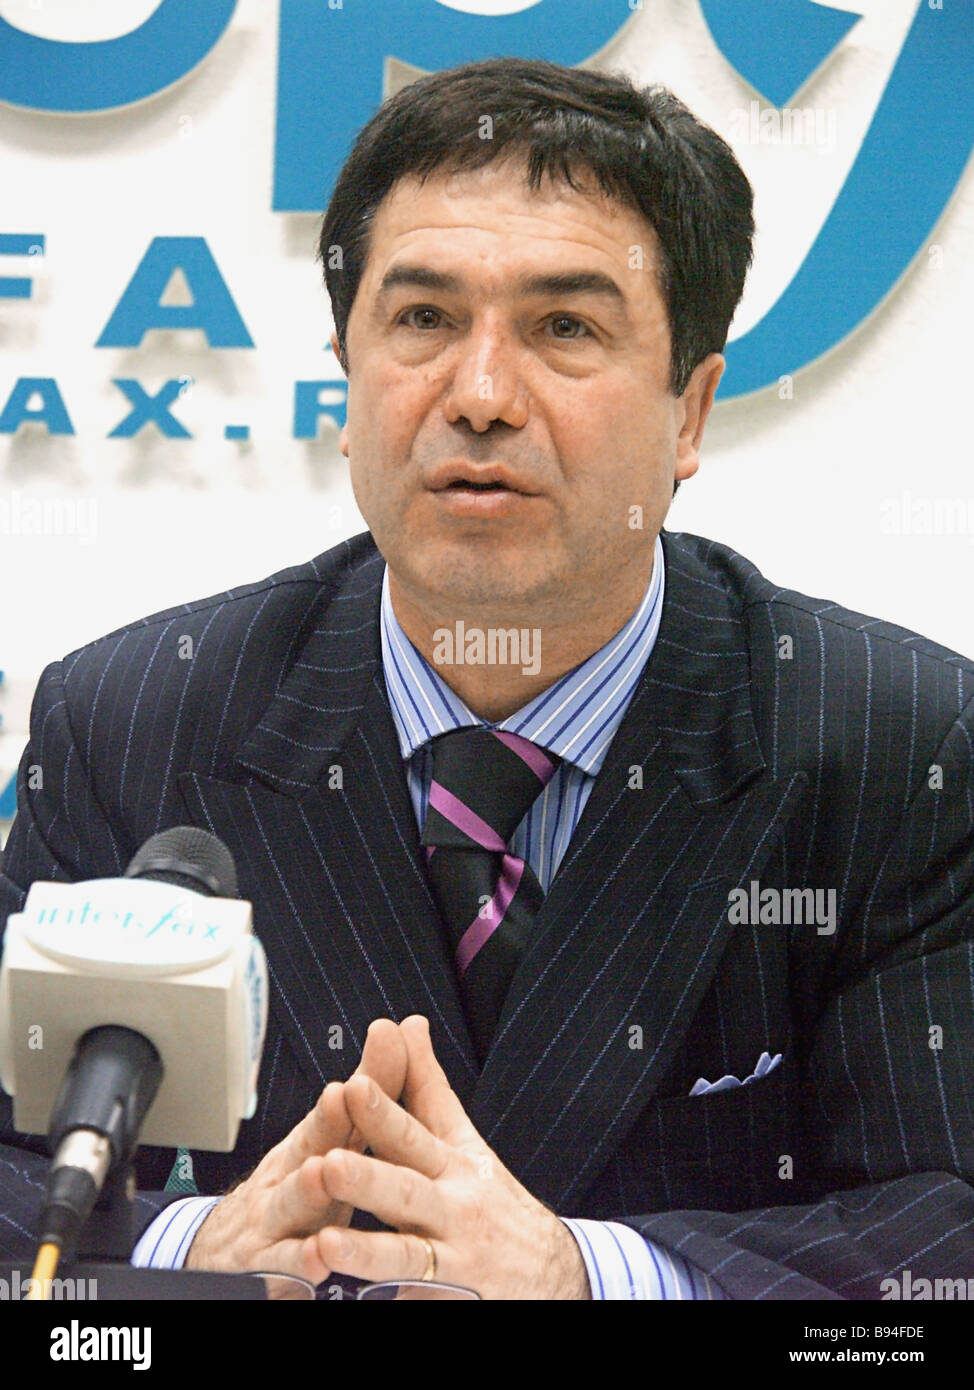 Anzori Aksentyev a candidate for Russian president at the news conference Anzori Aksentyev s Action Plan Three Enemies - Stock Image